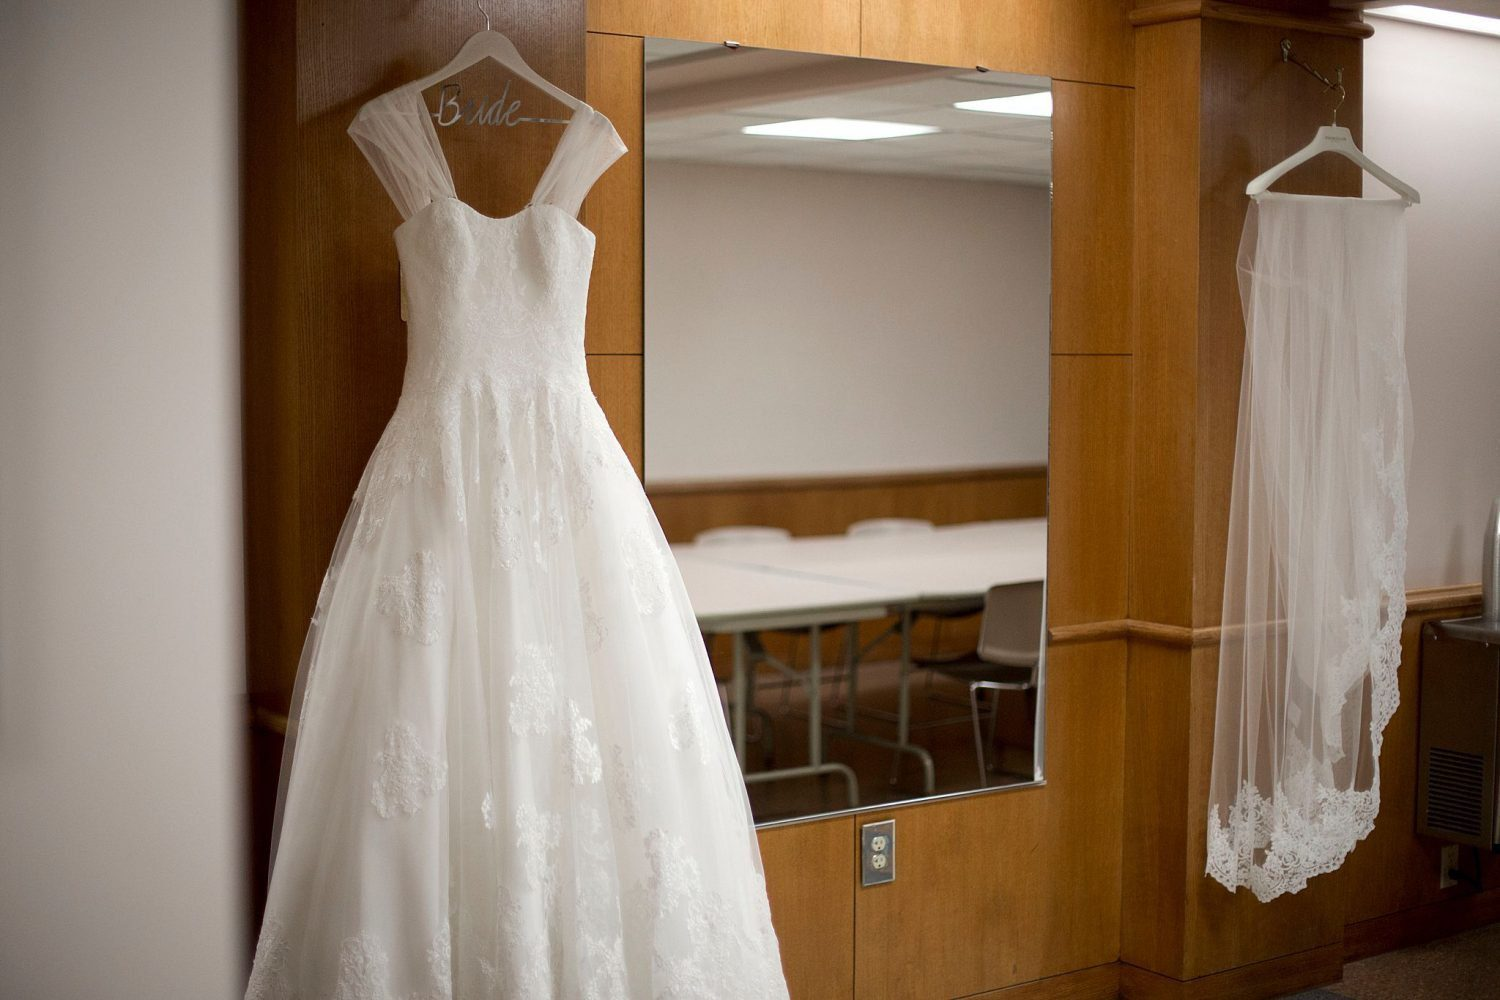 A white wedding gown hangs in the community hall of St. Ambrose Cathedral.